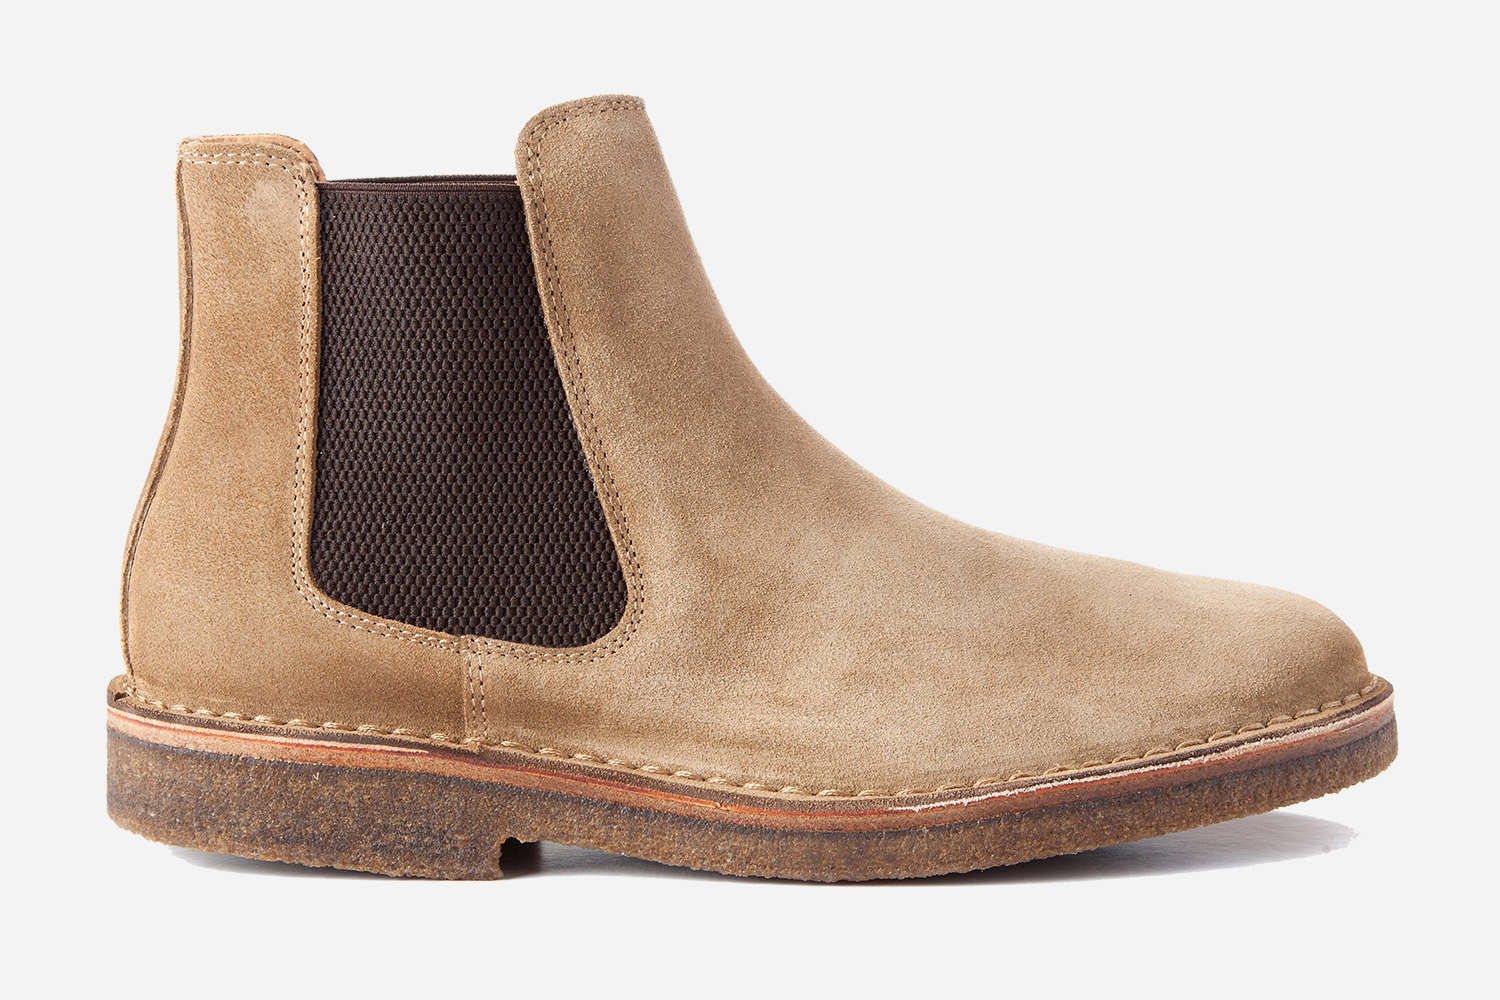 Astorflex Suede Bitflex Chelsea Boots on Sale at Huckberry